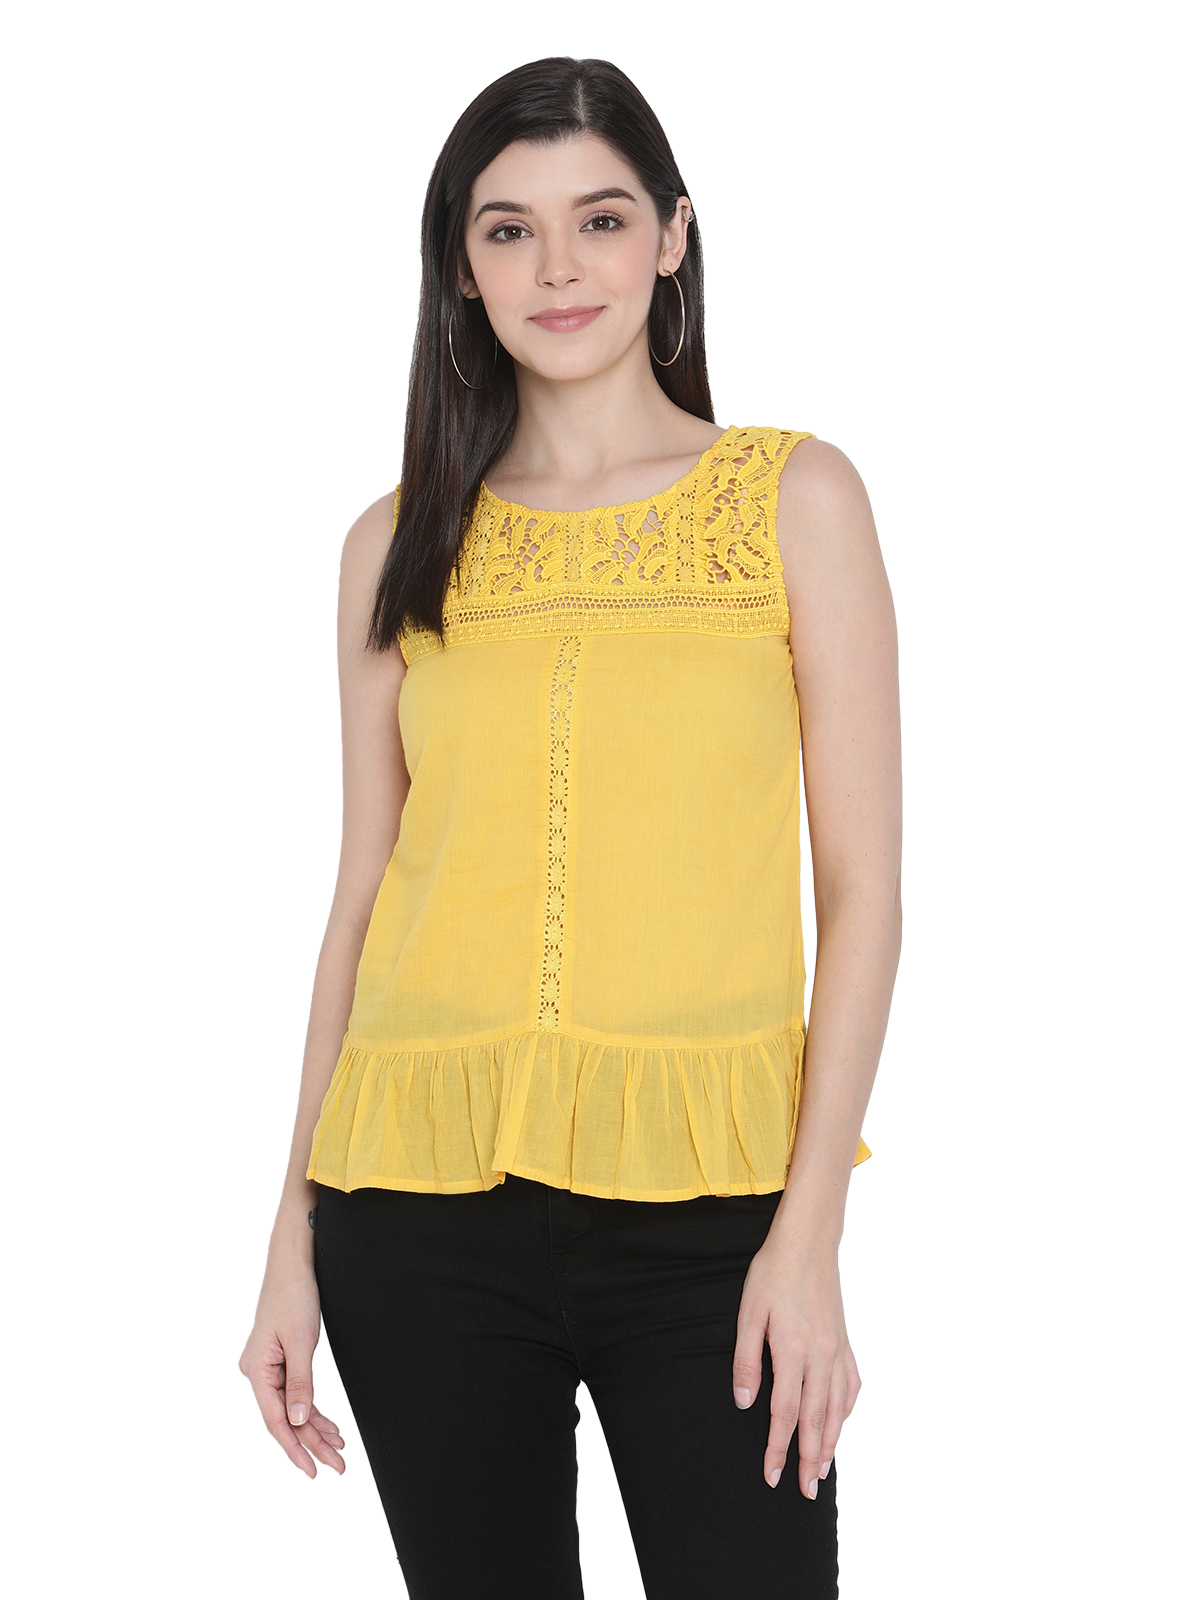 Porsorte   Porsorte Womens Pigment Washed Yellow Cotton Voile with Lace Embroidery Top